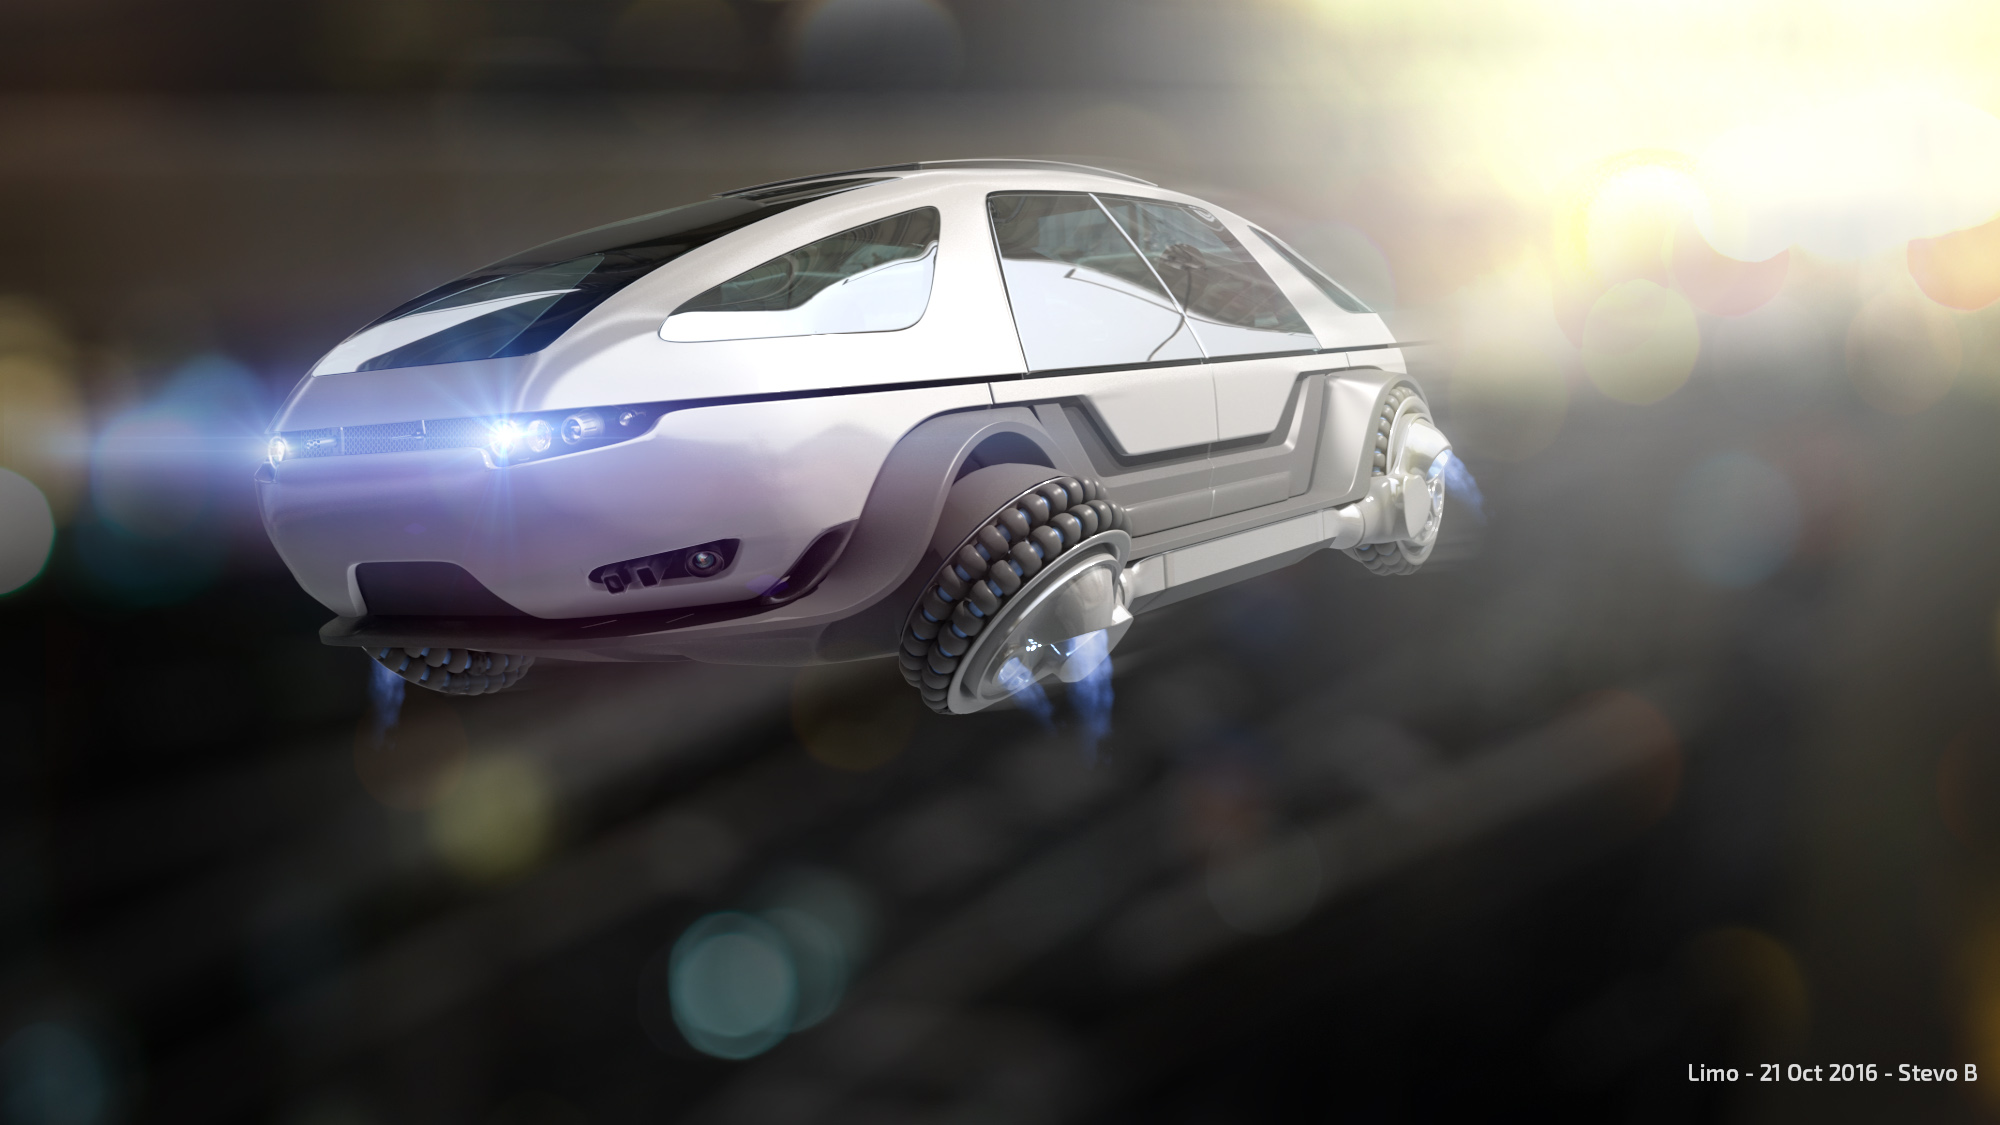 ALTERED CARBON LIMO concept illustration by Stevo Bedford